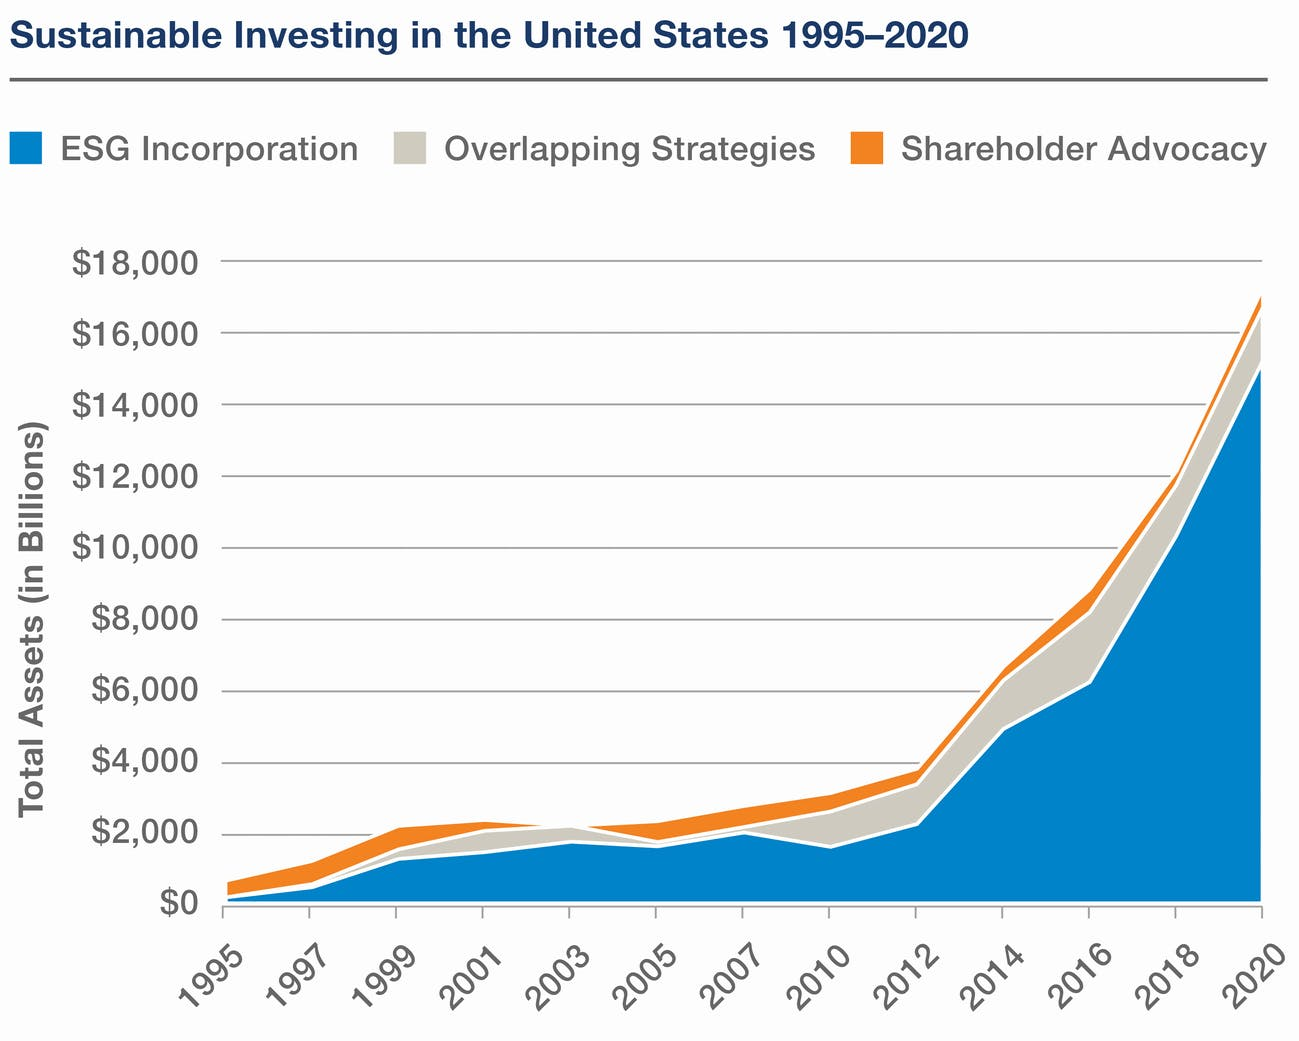 Sustainable investing in the US